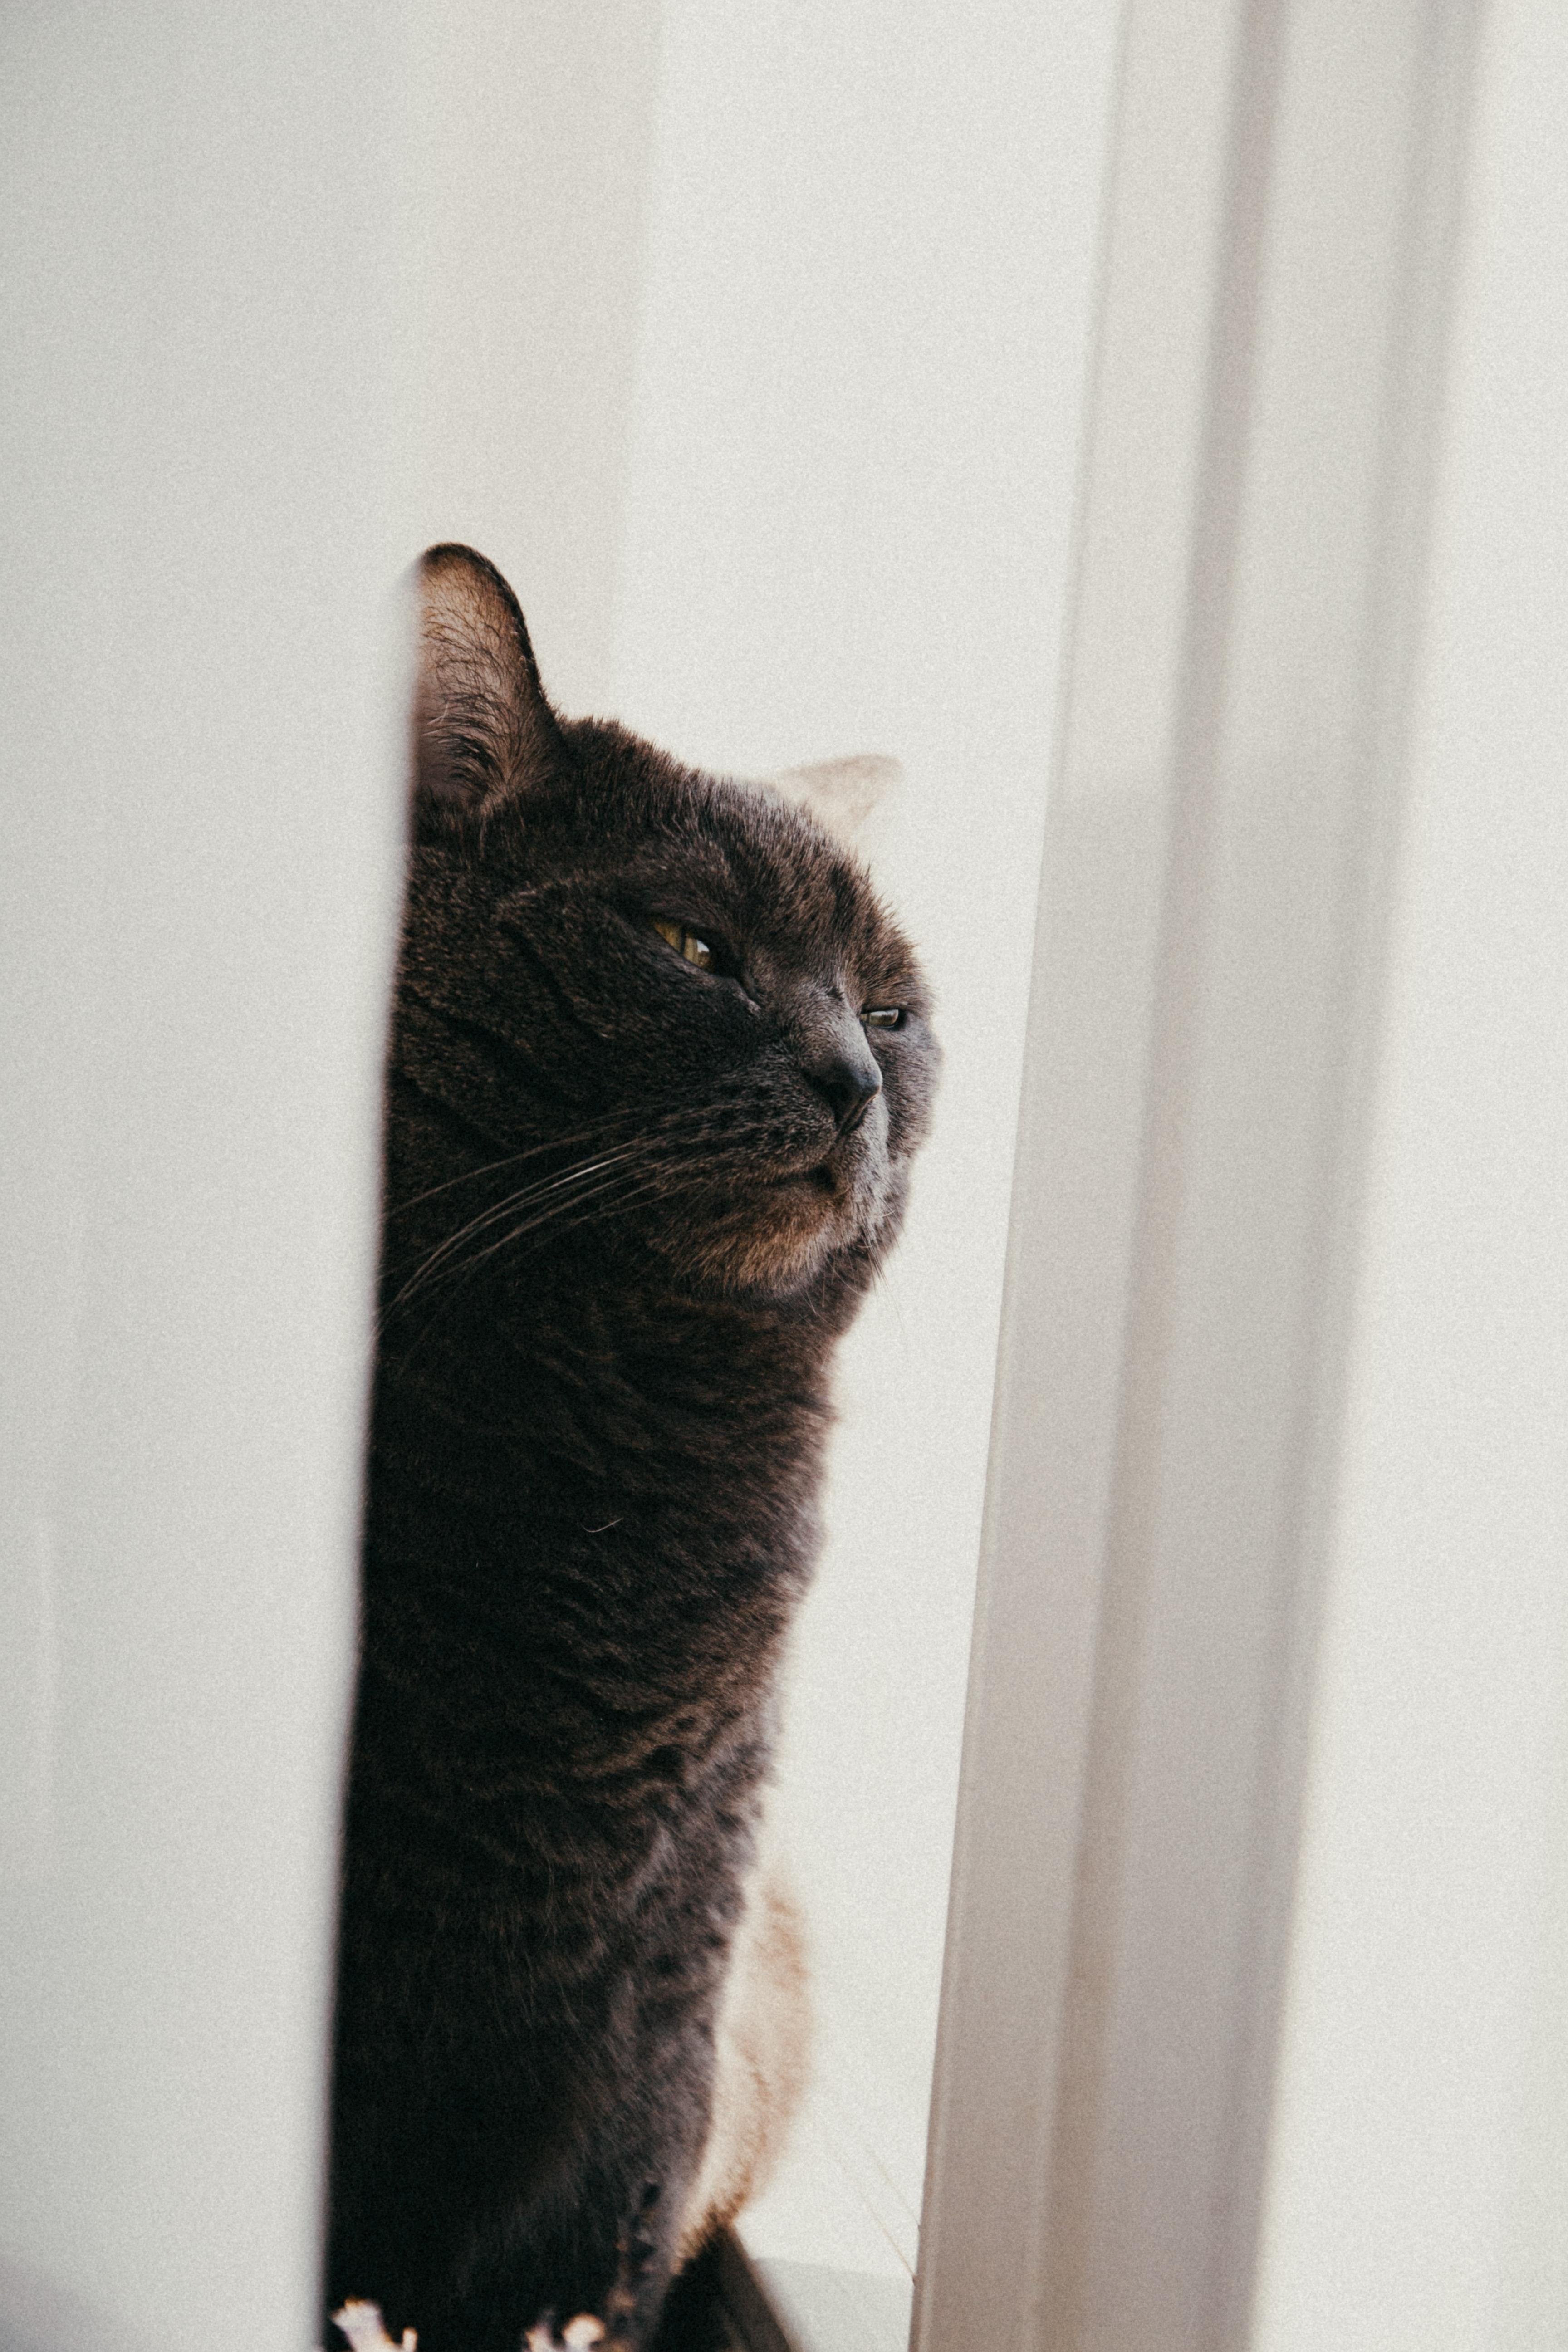 89029 download wallpaper Animals, Cat, Pet, Funny, Sleep, Dream, Cloth screensavers and pictures for free